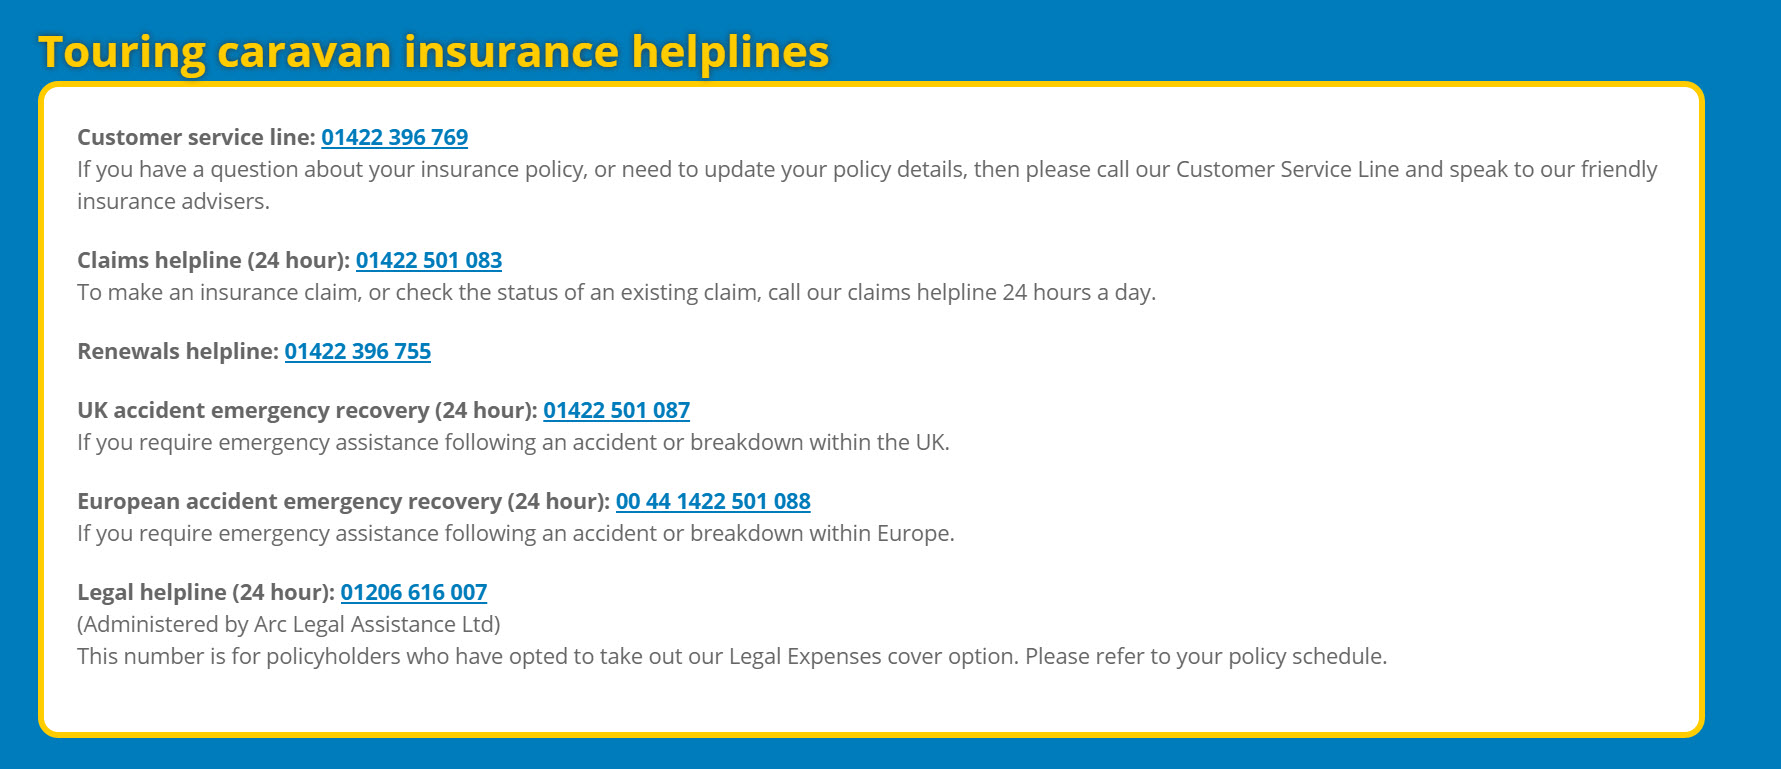 Touring caravan insurance helplines